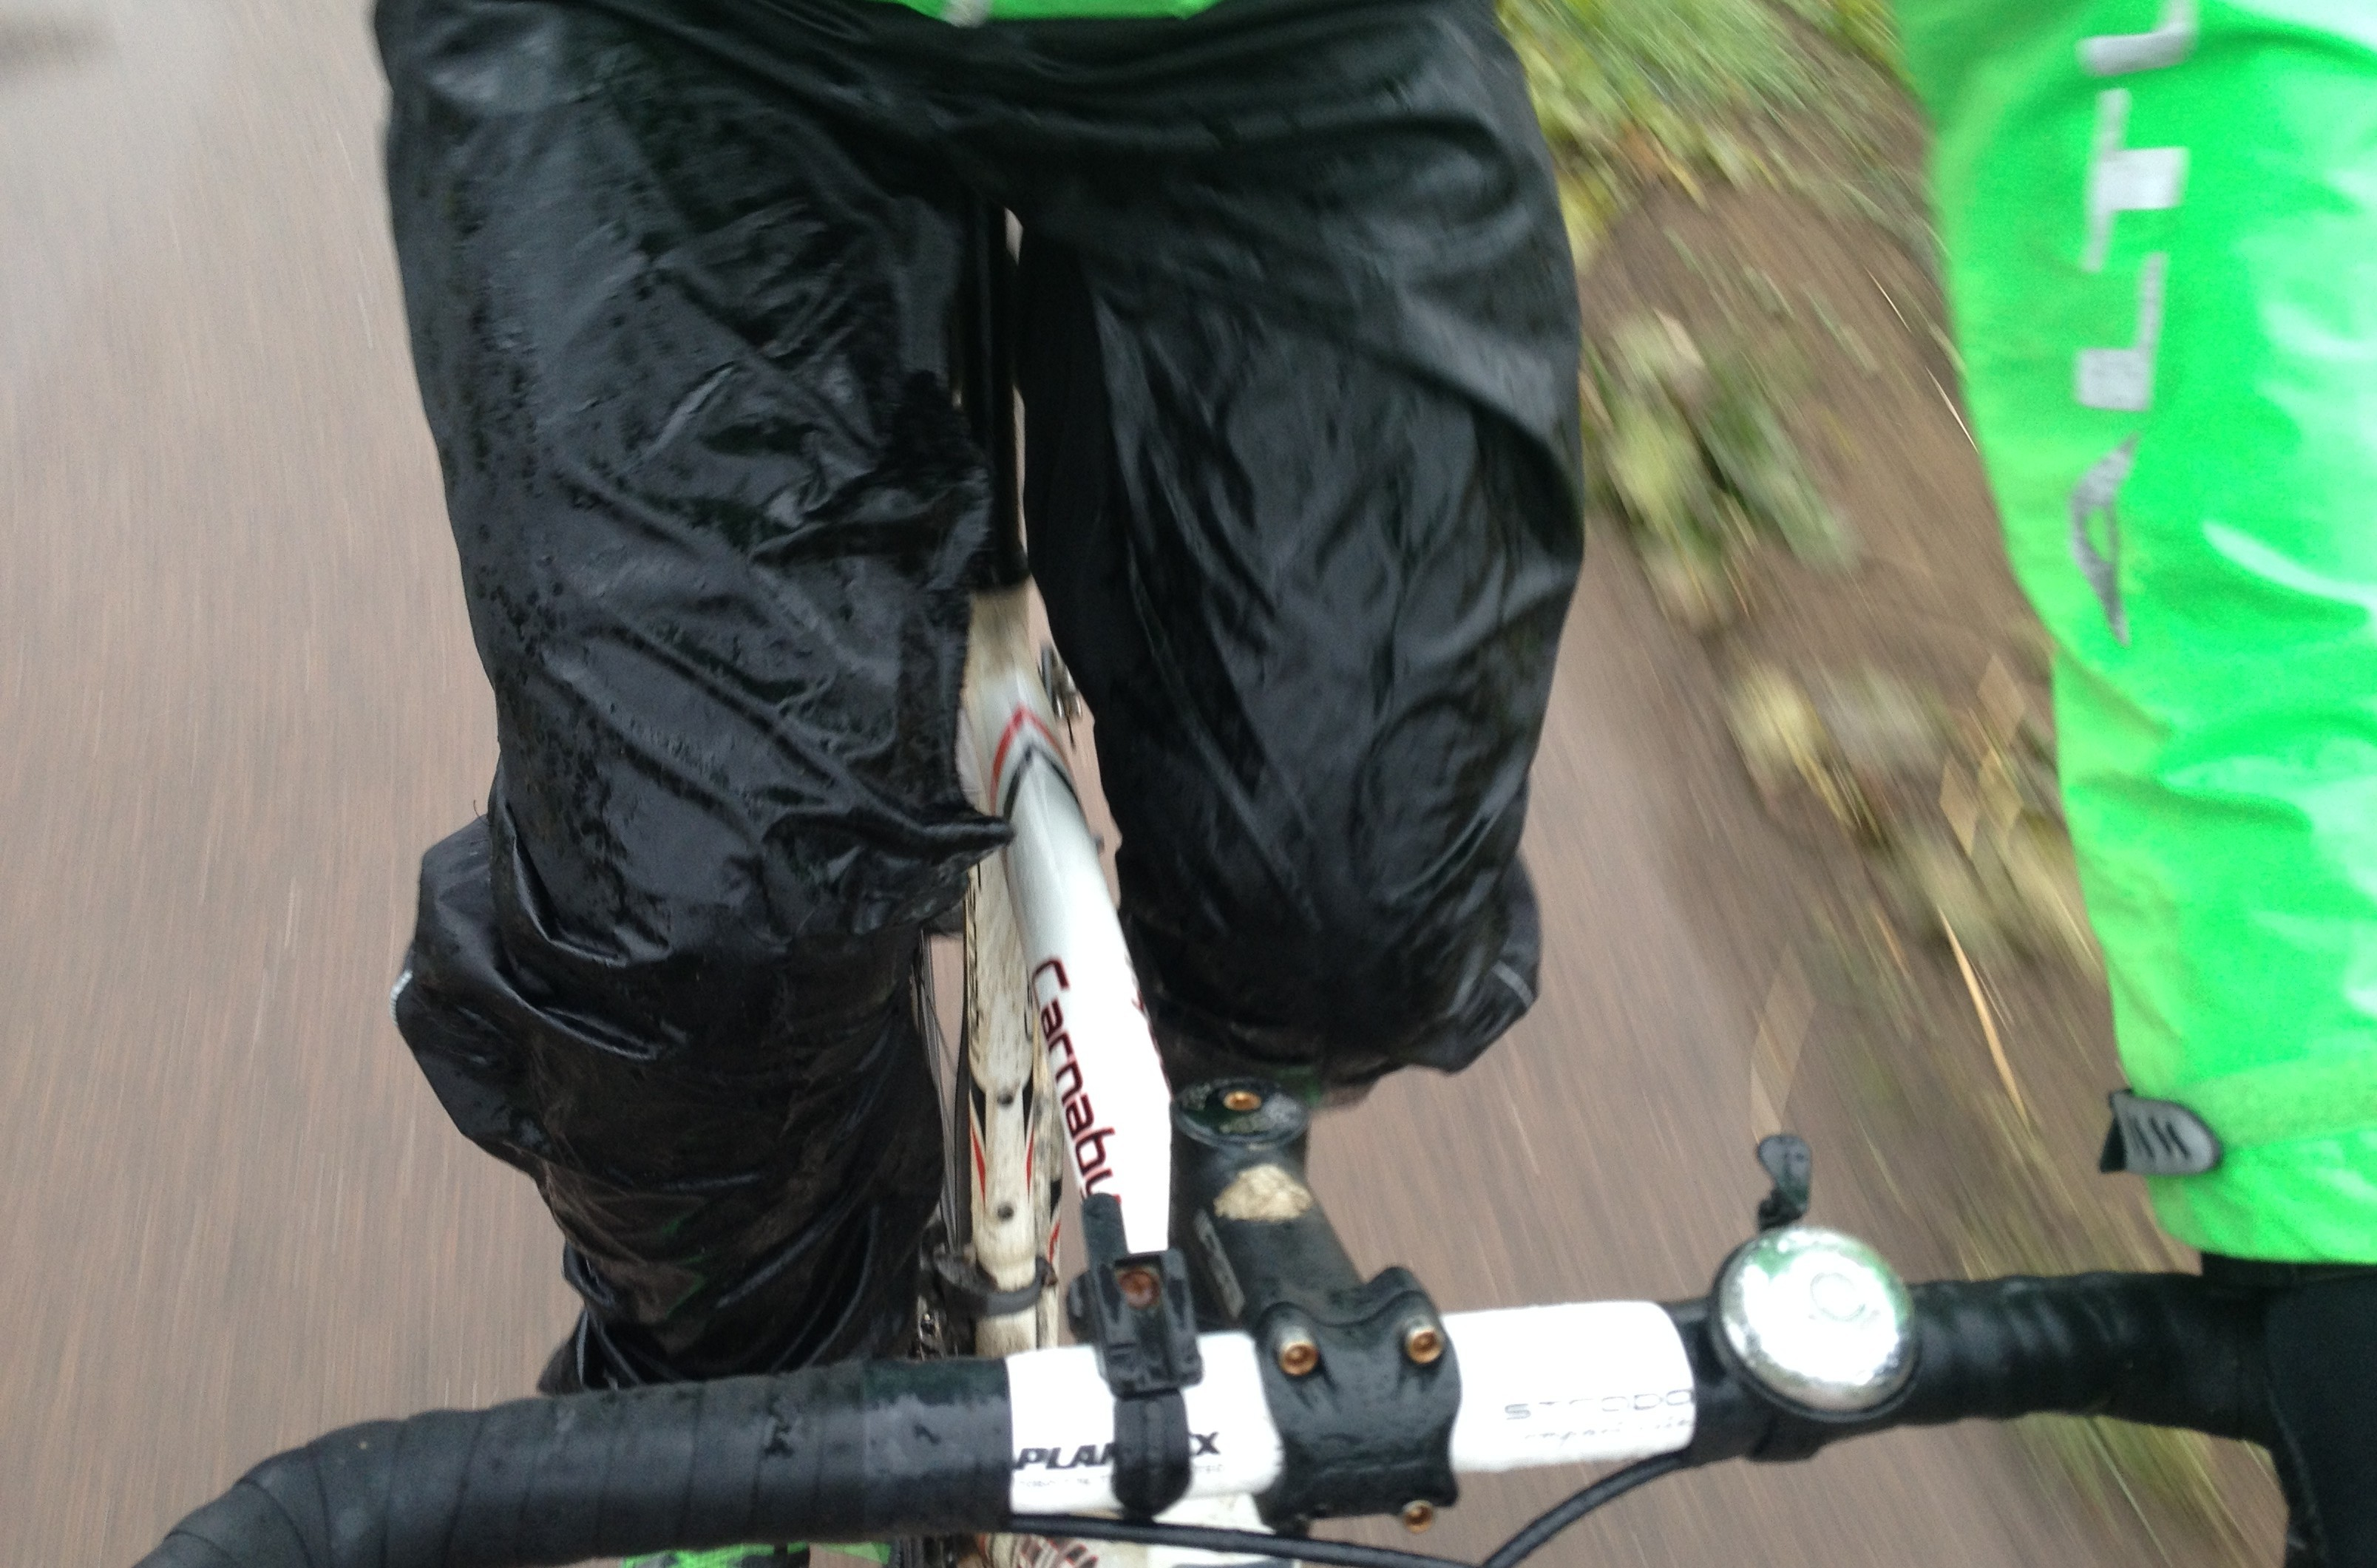 Cycling in the rain is fun - for a short while.